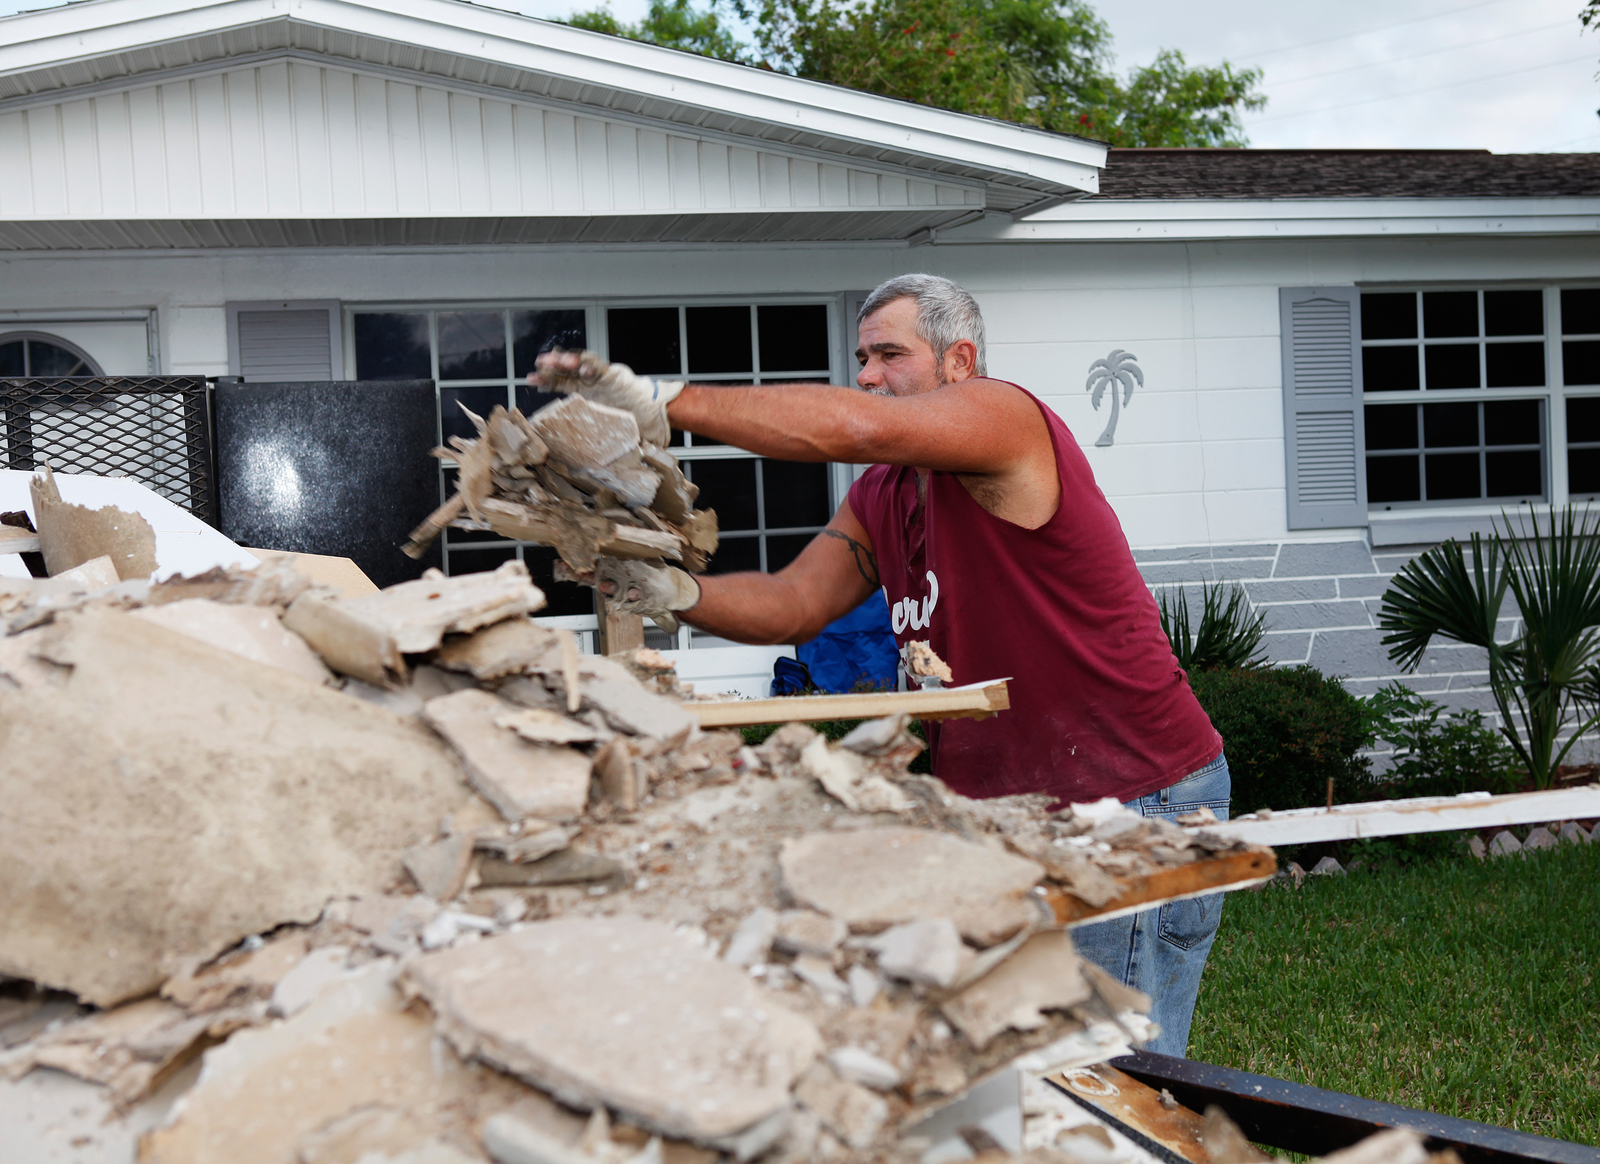 Flooding ^ Hurricane/Tropical Storm - Trinity, Fla. , June 30, 2012 -- Pasco County, Florida homeowner disposes damaged Sheetrock and household belongings after flooding from Tropical Storm Debby dumped more than 20 inches of rain in the area.  FEMA/David Fine